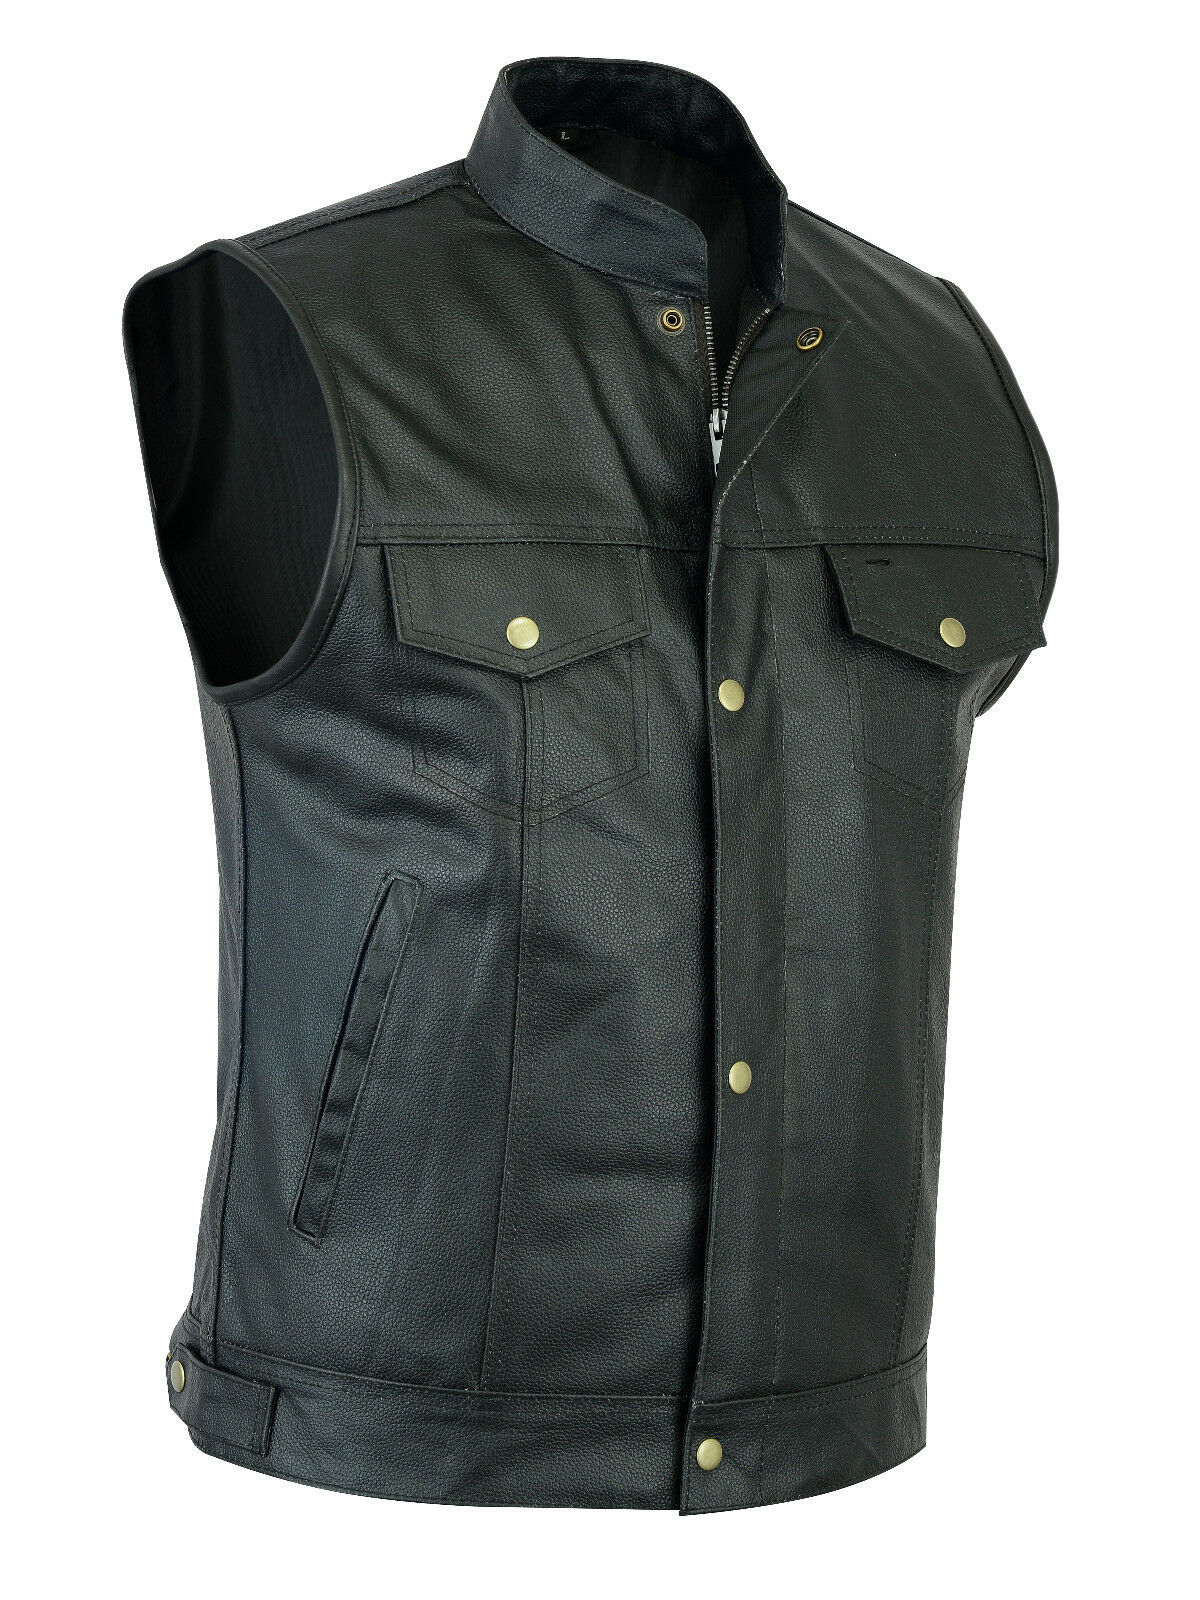 Uomini Sons of Anarchy Gun Tasca Us Stile Stile Us Gilet in Pelle-stile cut off c88317